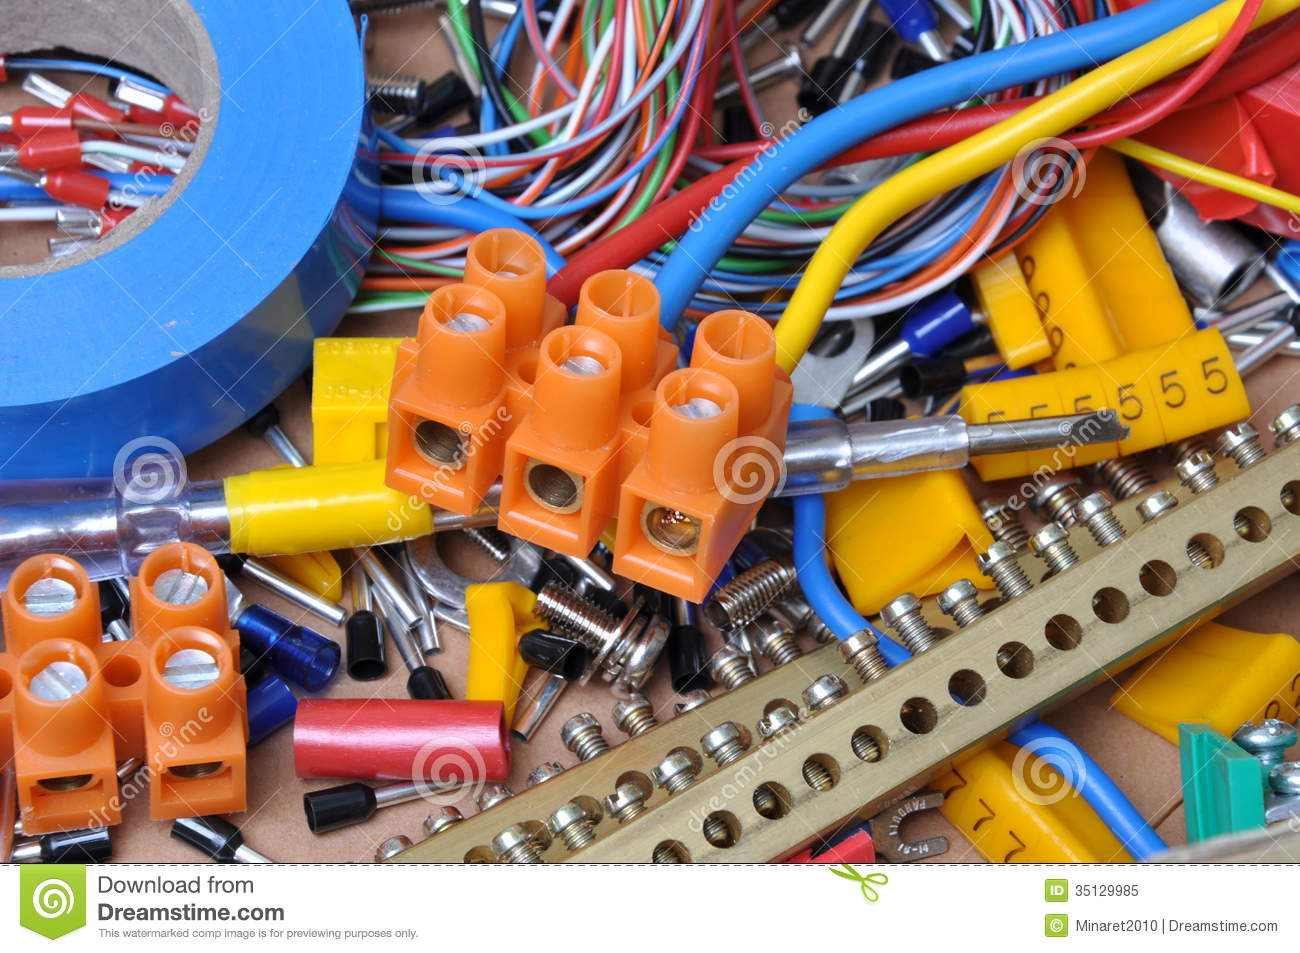 Electrical component kit stock image Image of electronics